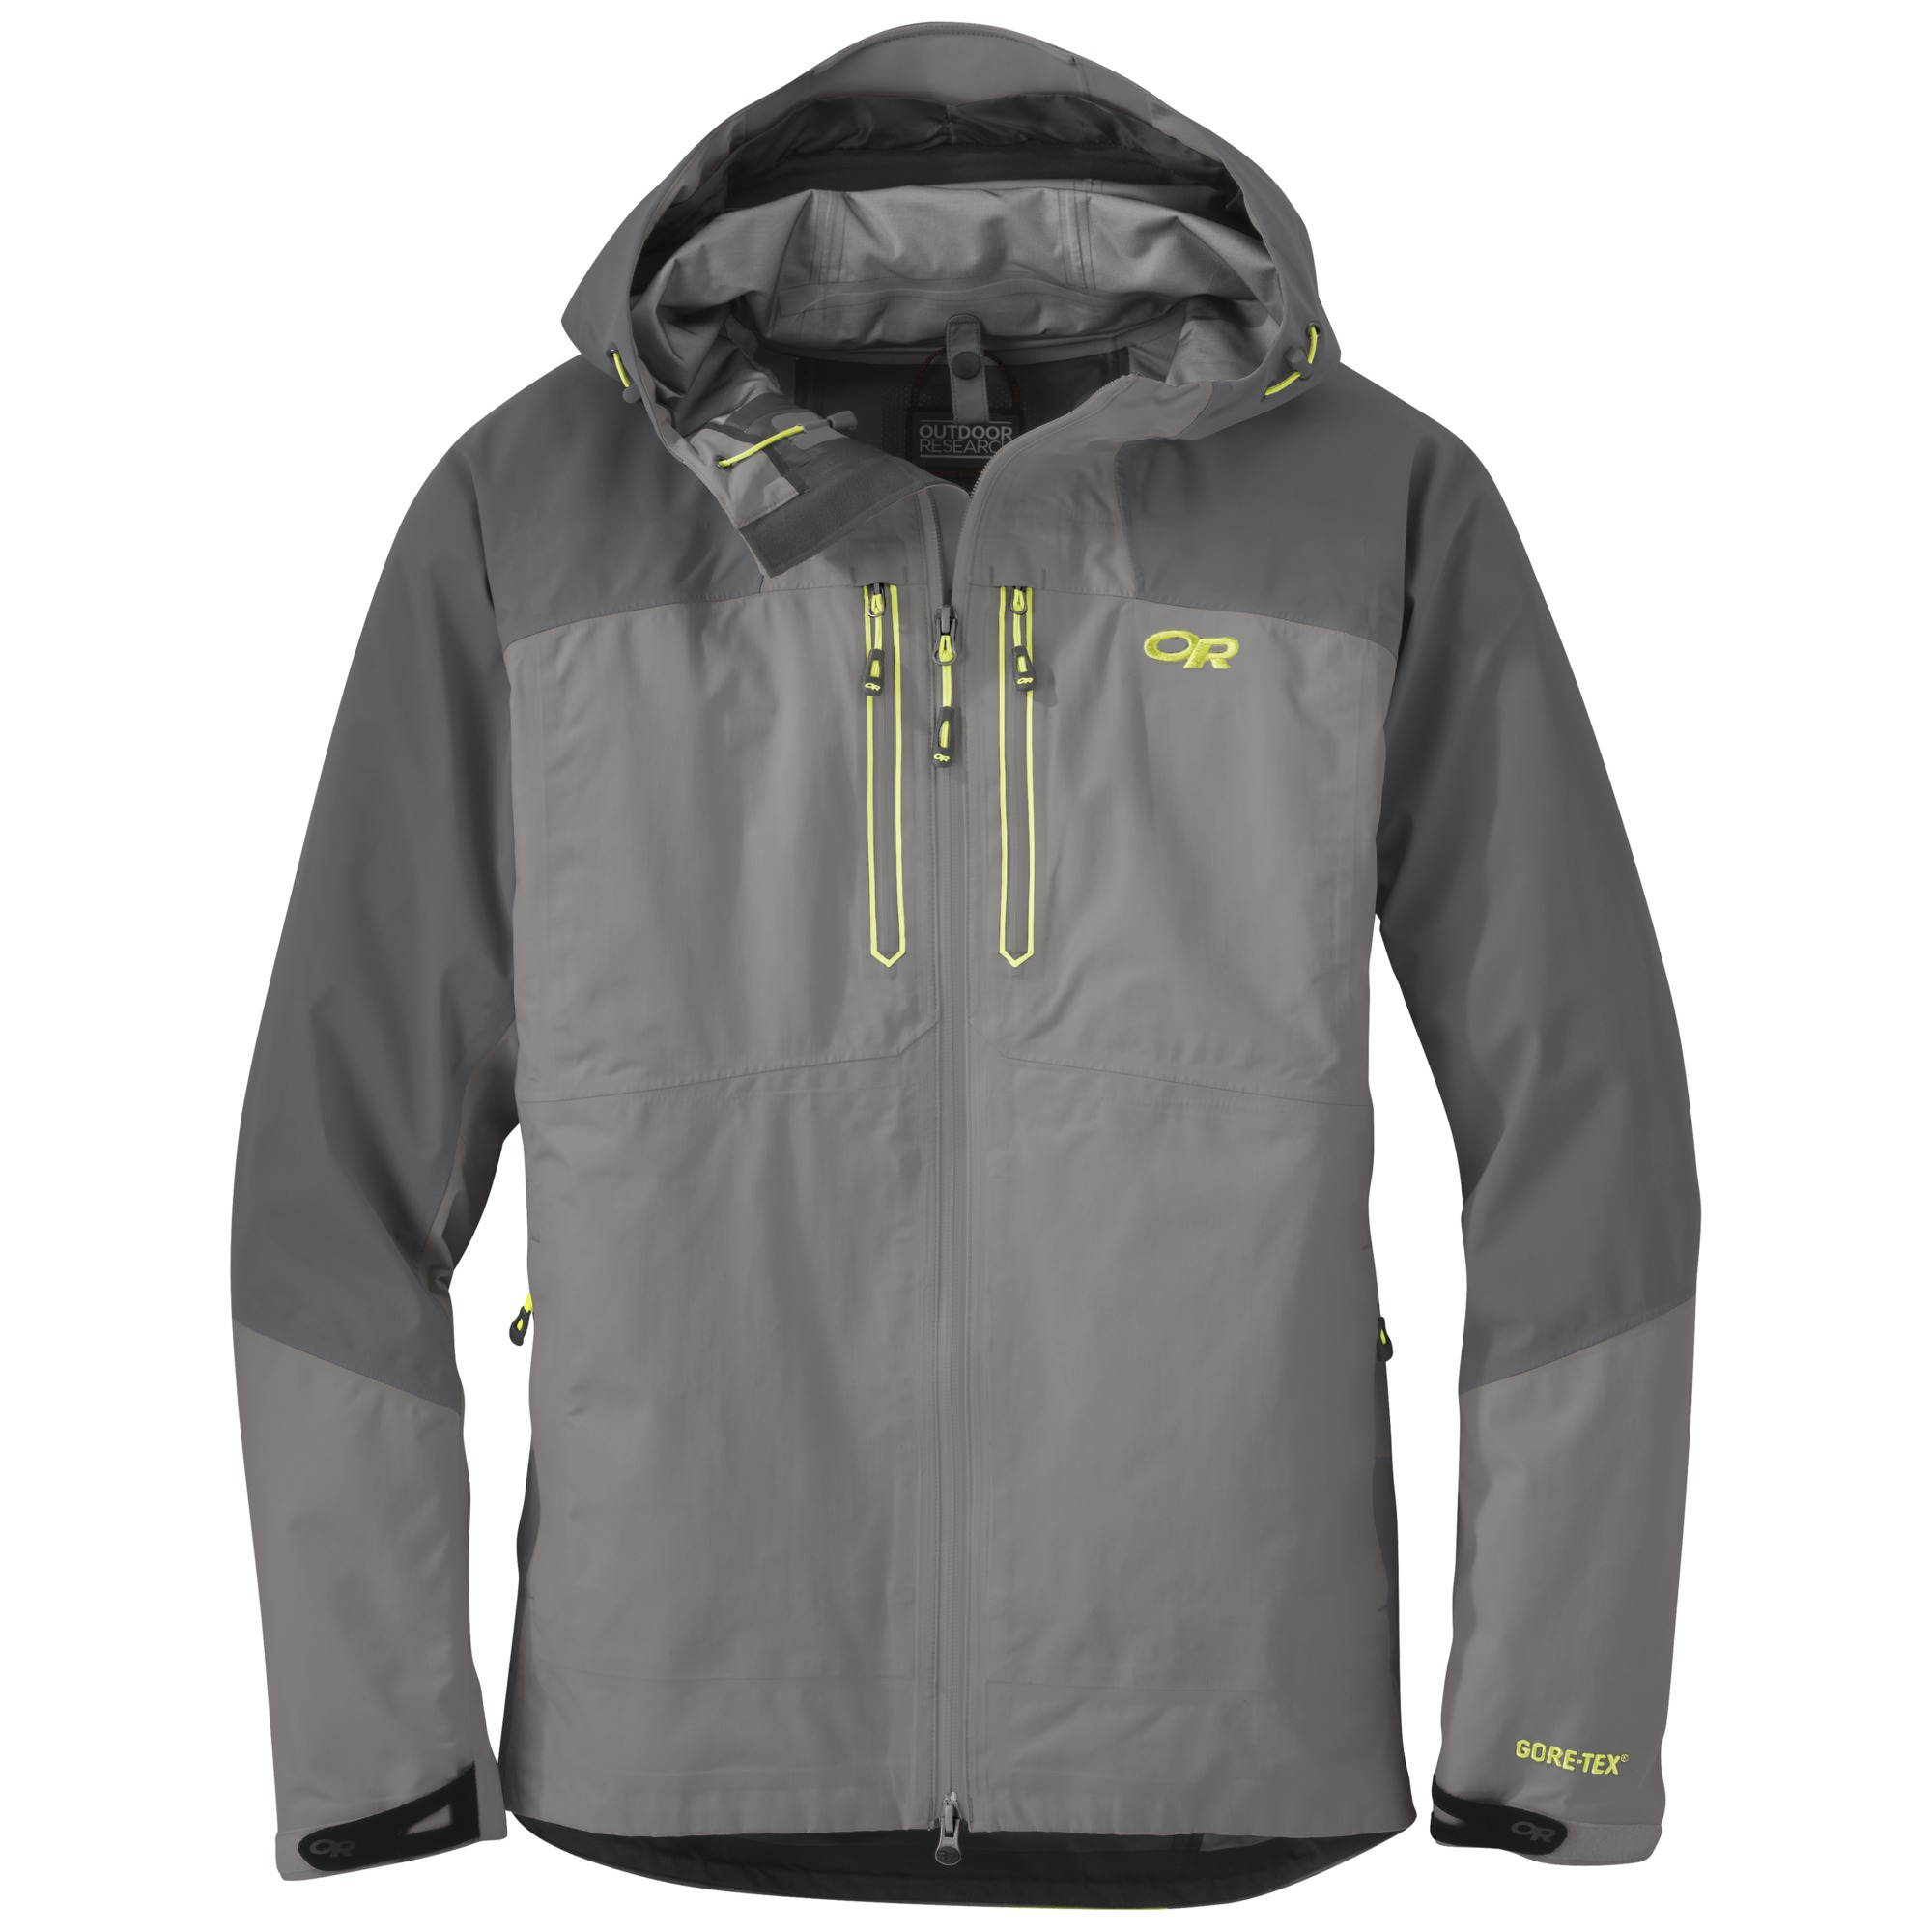 6fad92e5904 Men's Furio Jacket™ - pewter/charcoal | Outdoor Research